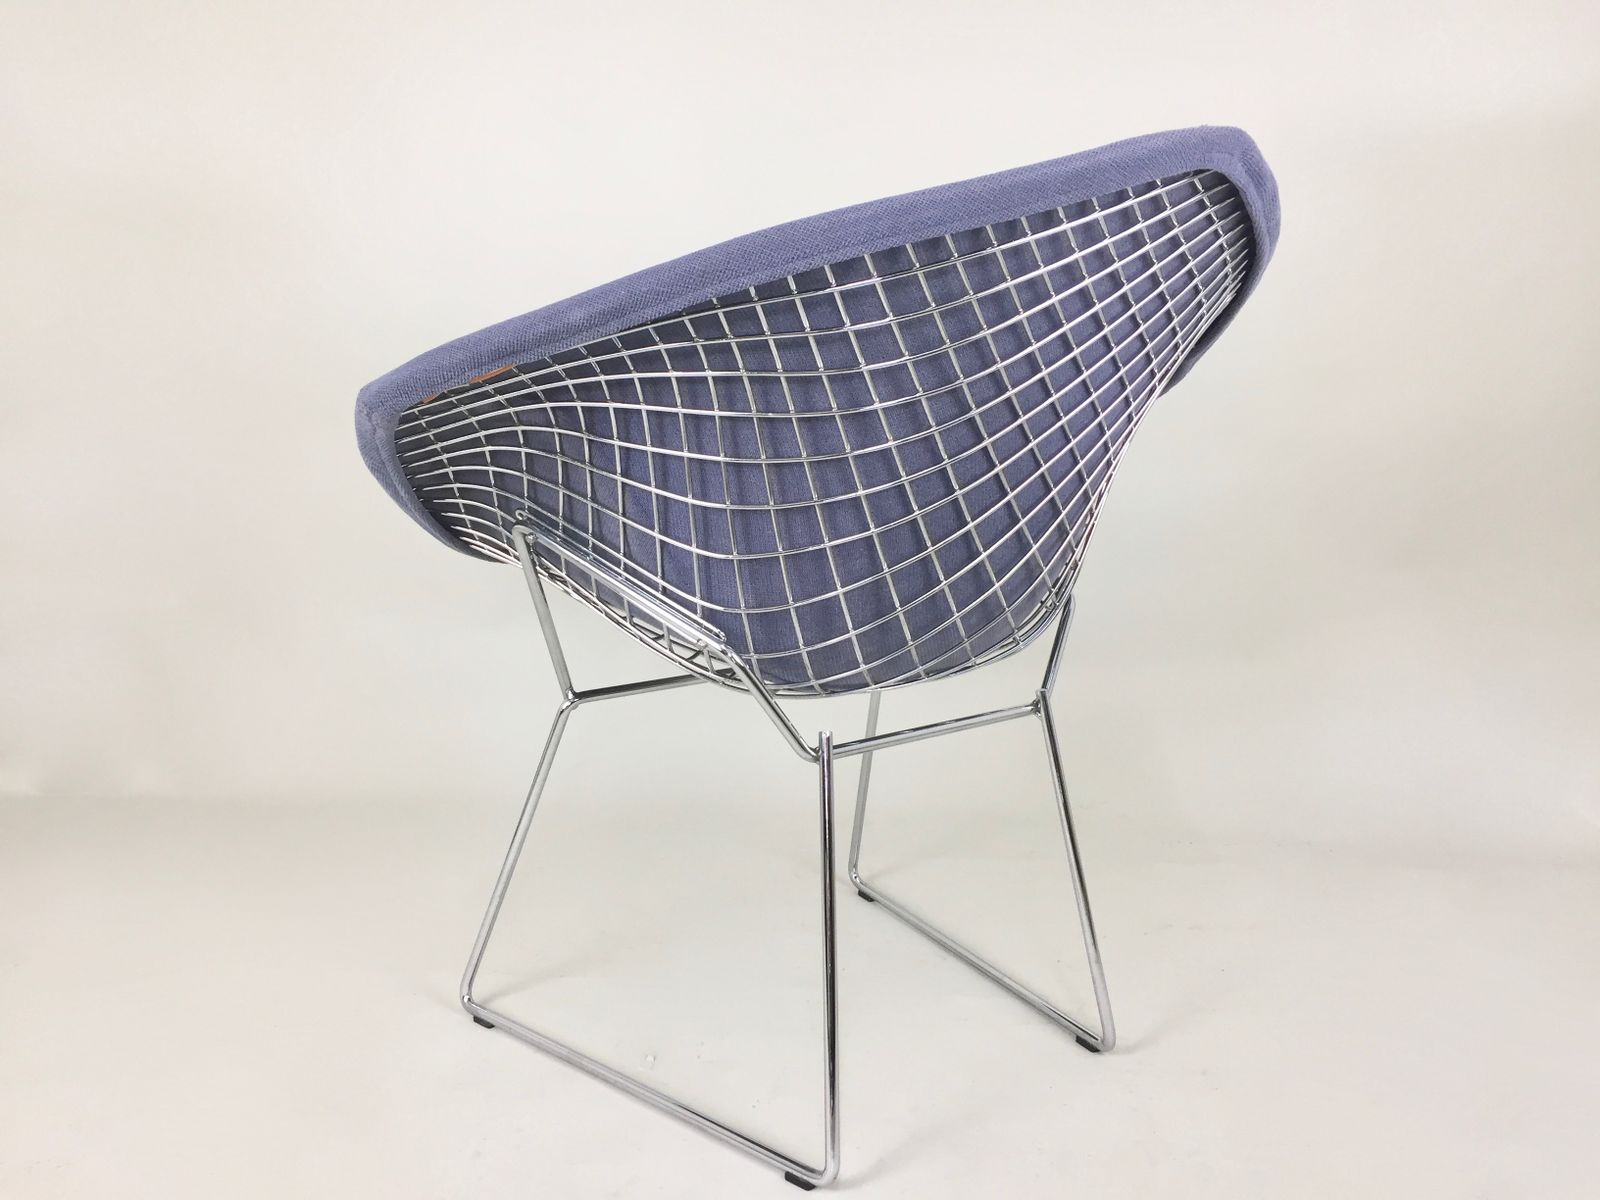 Bertoia diamond chair vintage - Vintage Blue Diamond Chair By Harry Bertoia For Knoll